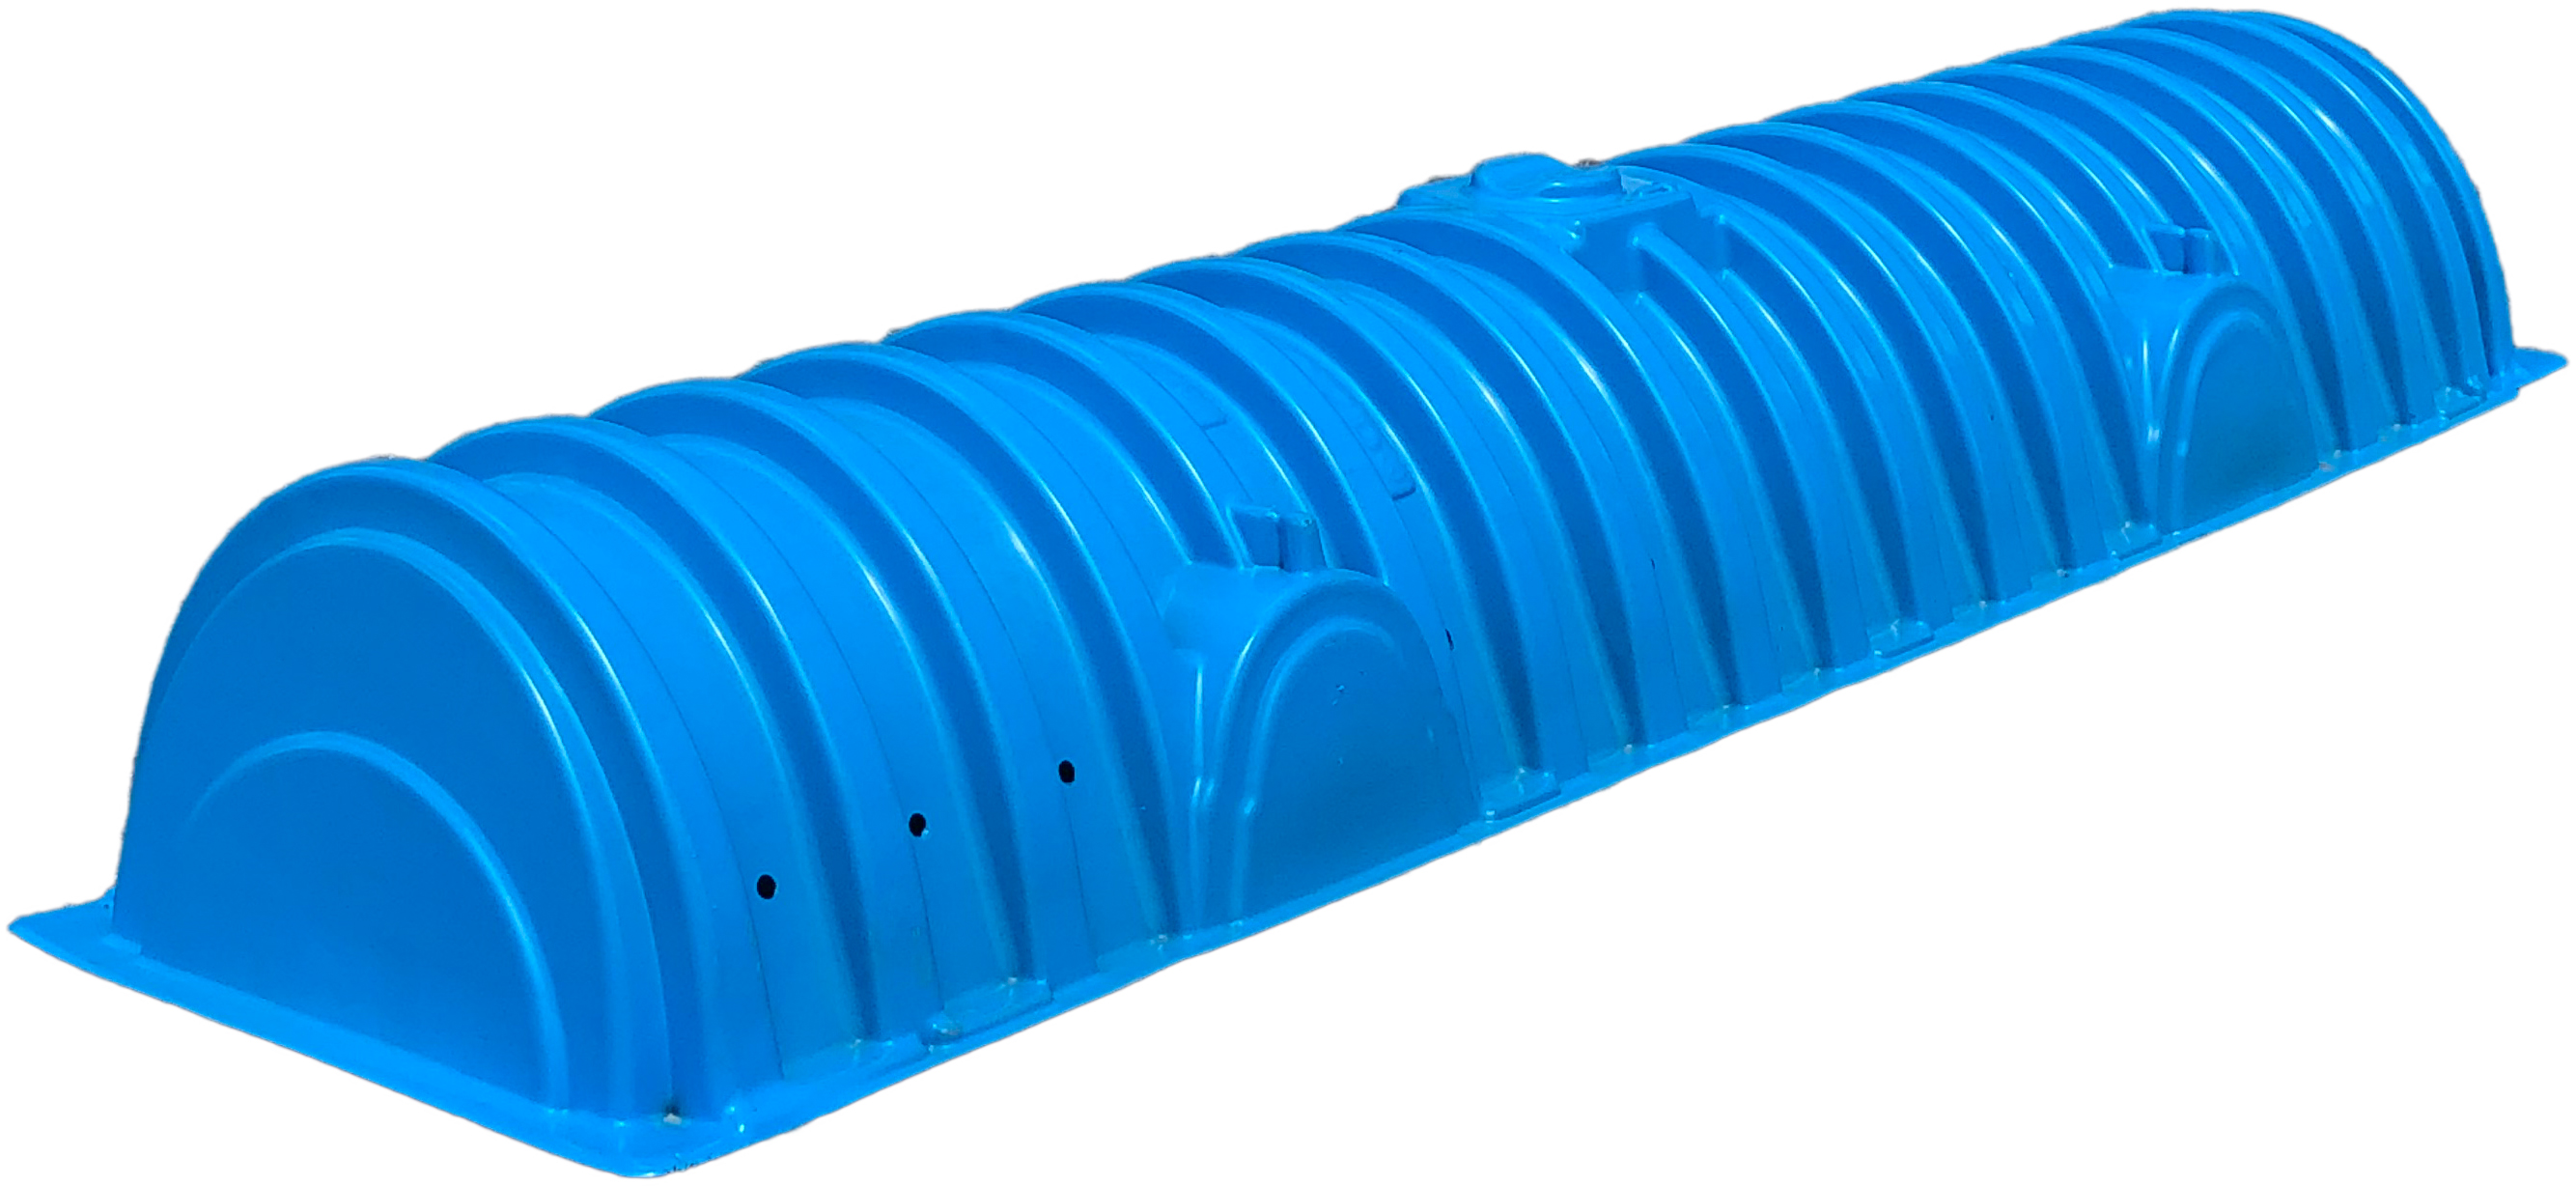 Recharger 150XLHD septic chamber- side view